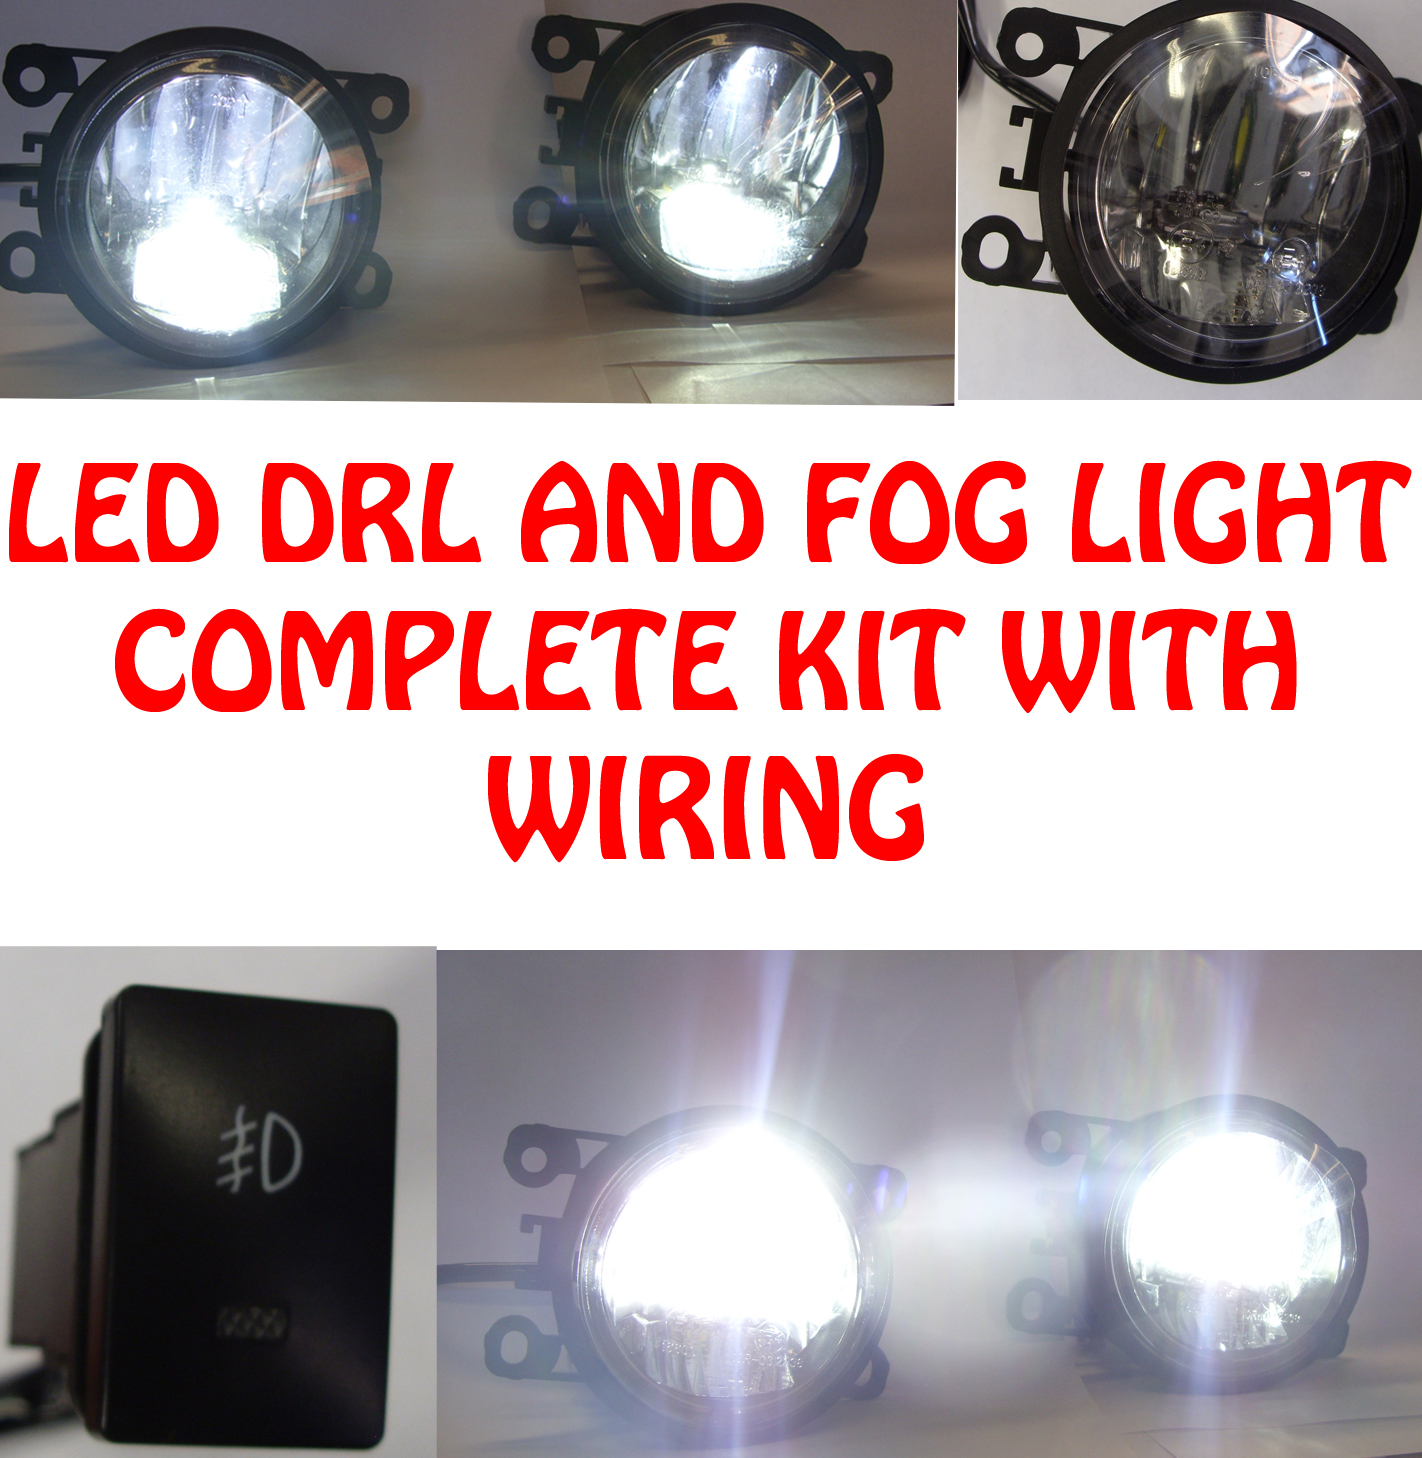 High Power Led Drl And Fog Lights With Wiring Switch For Ford Fusion Sentinel 07